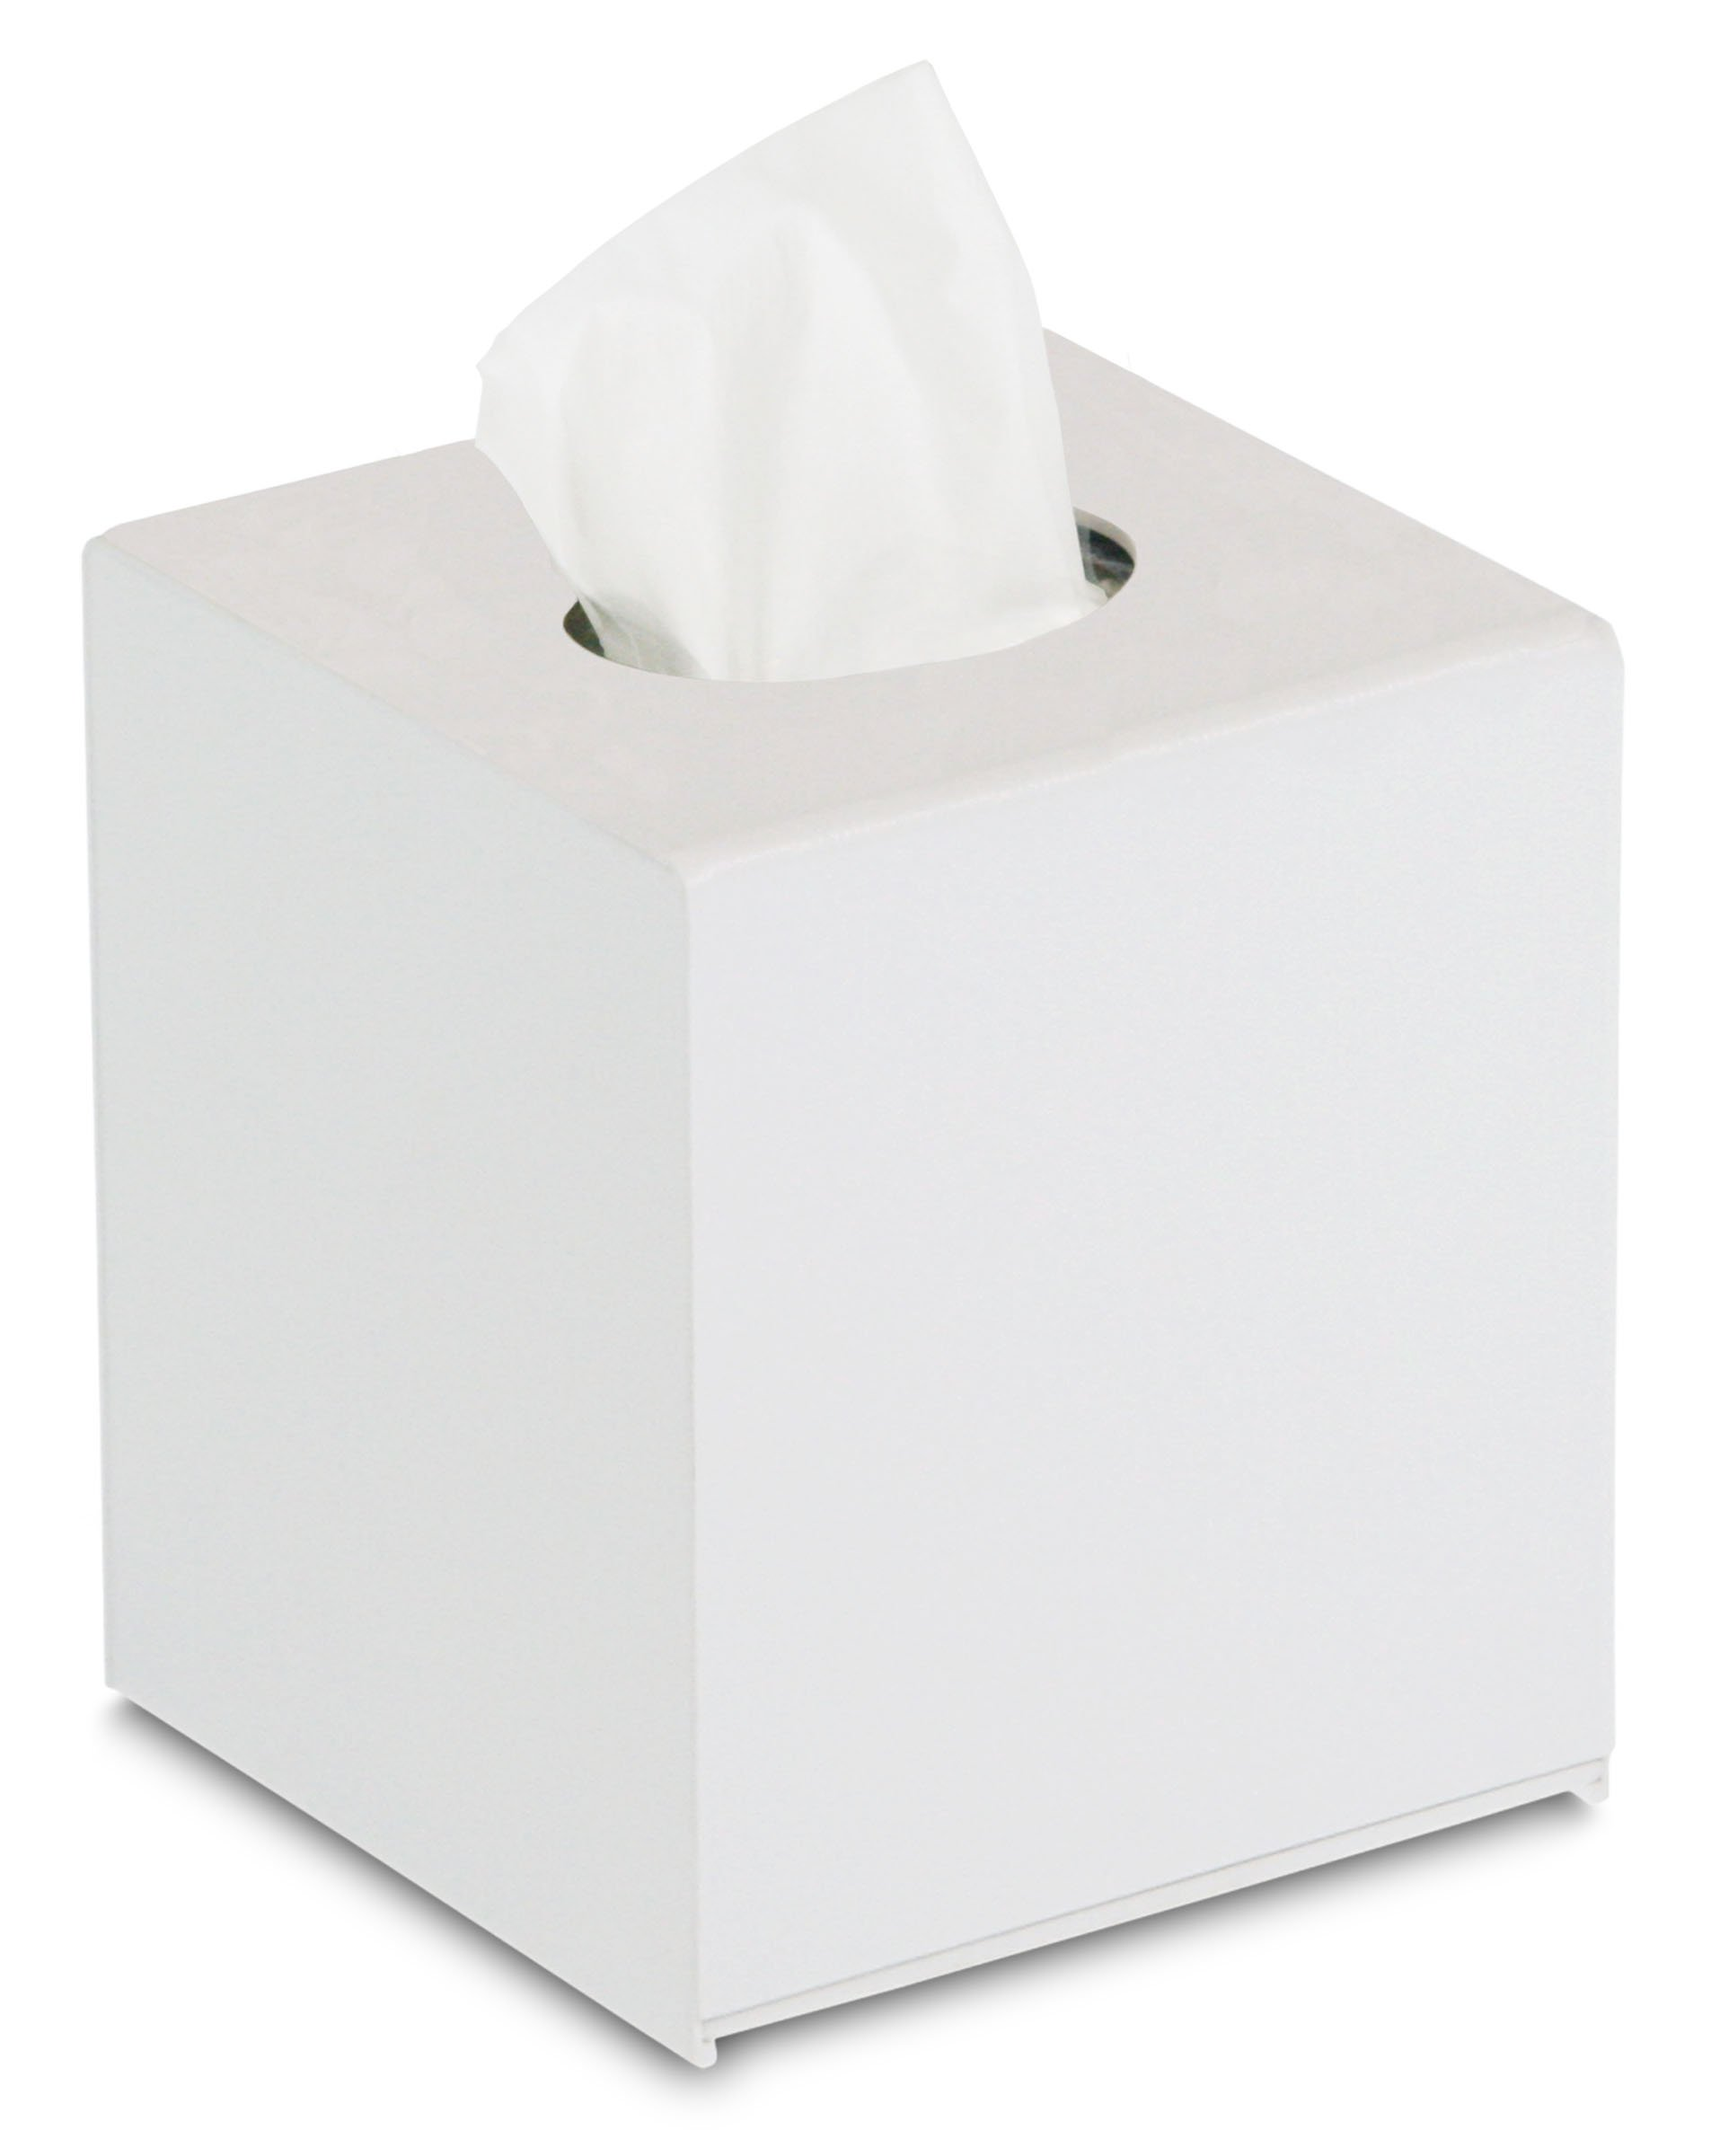 TrippNT 50995 Wall Mountable Cube Kleenex Box Holder, 5'' Width x 6'' Height x 5'' Depth, White